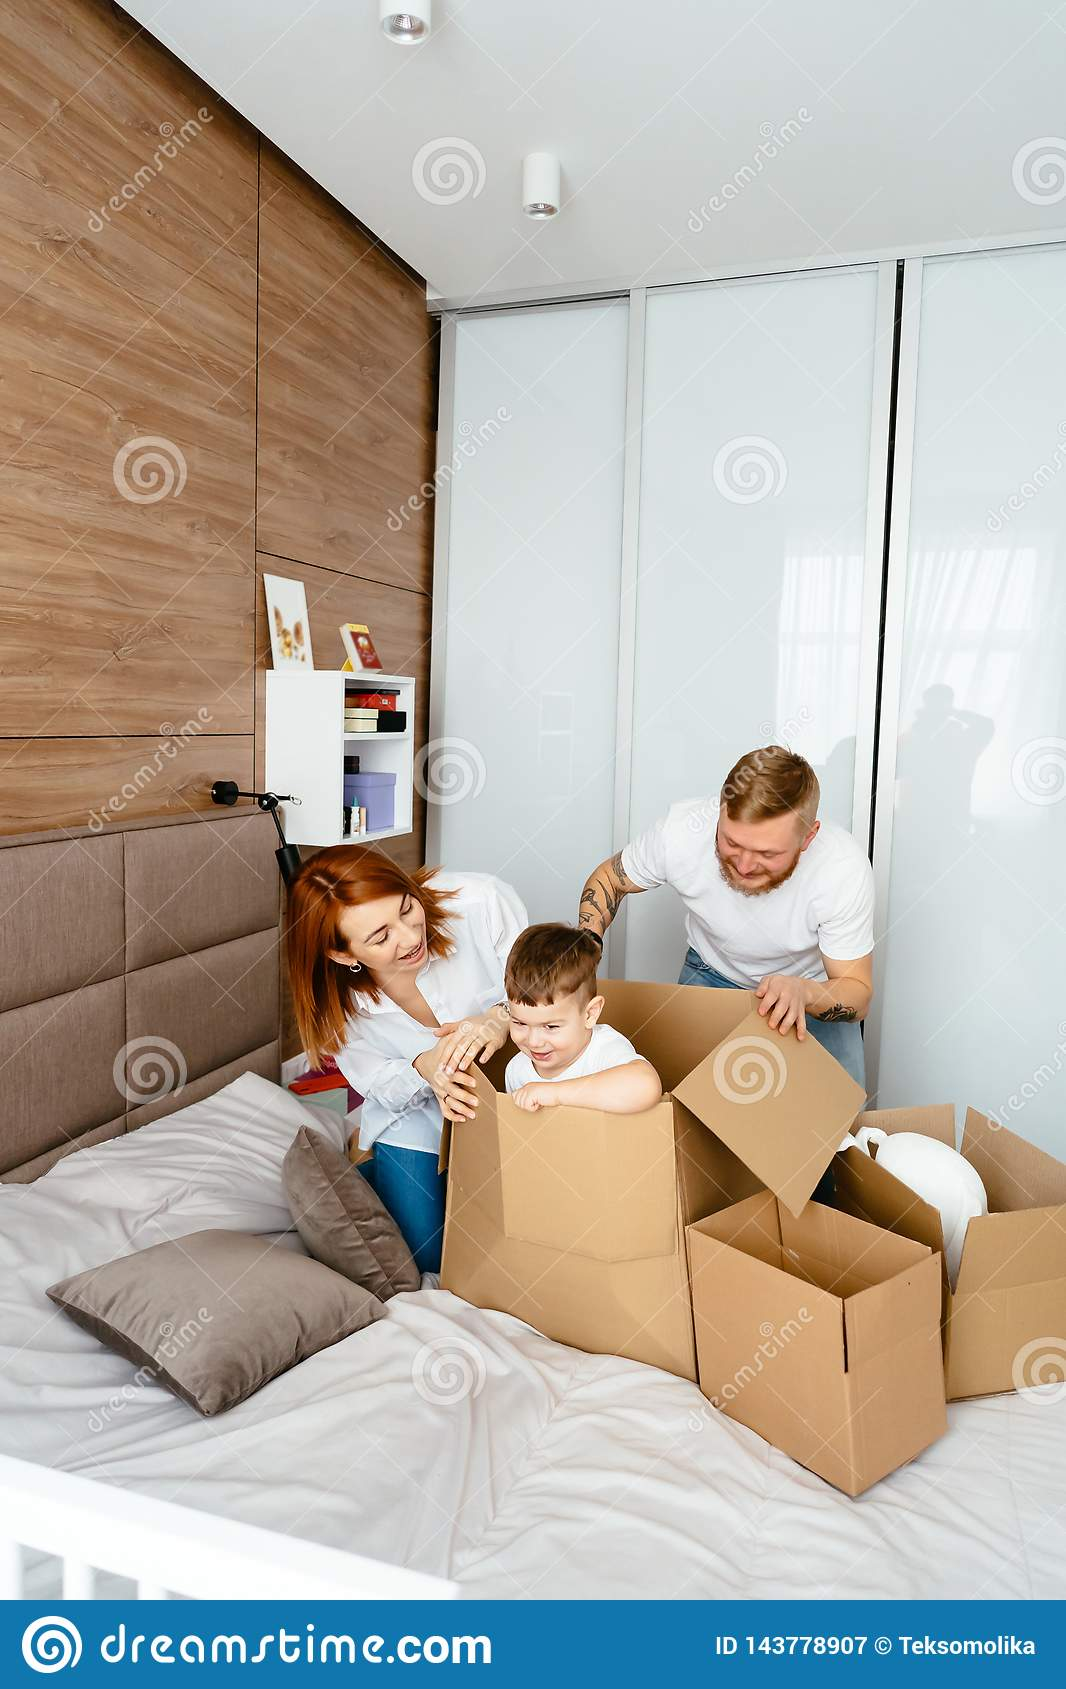 Dad mom and little son play in the bedroom with paper boxes